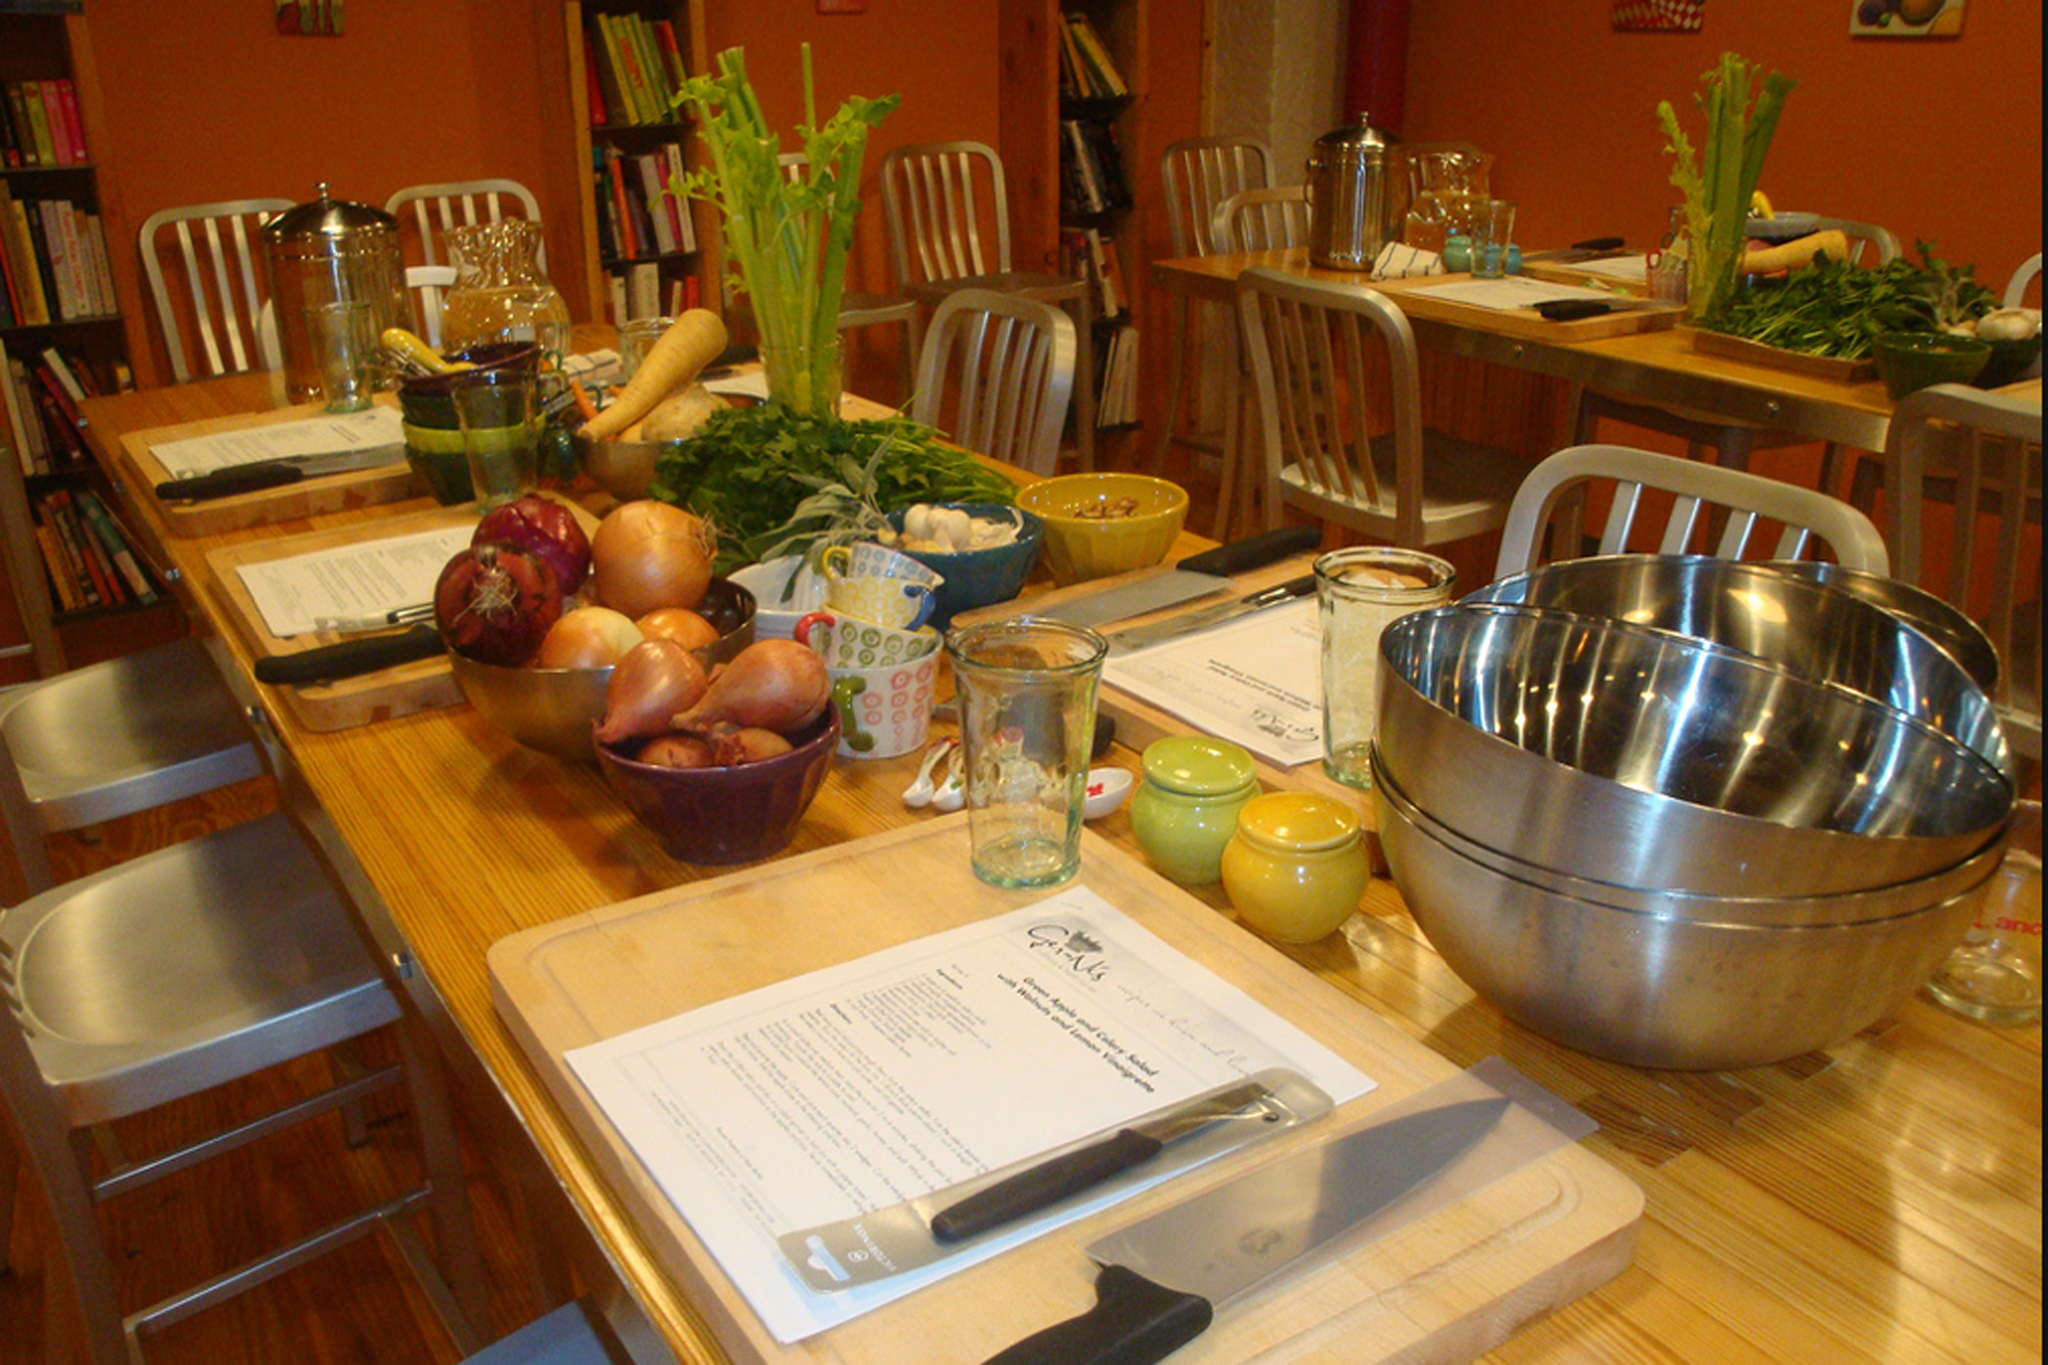 Mix your own Marys at Ger-Nis Culinary & Herb Center